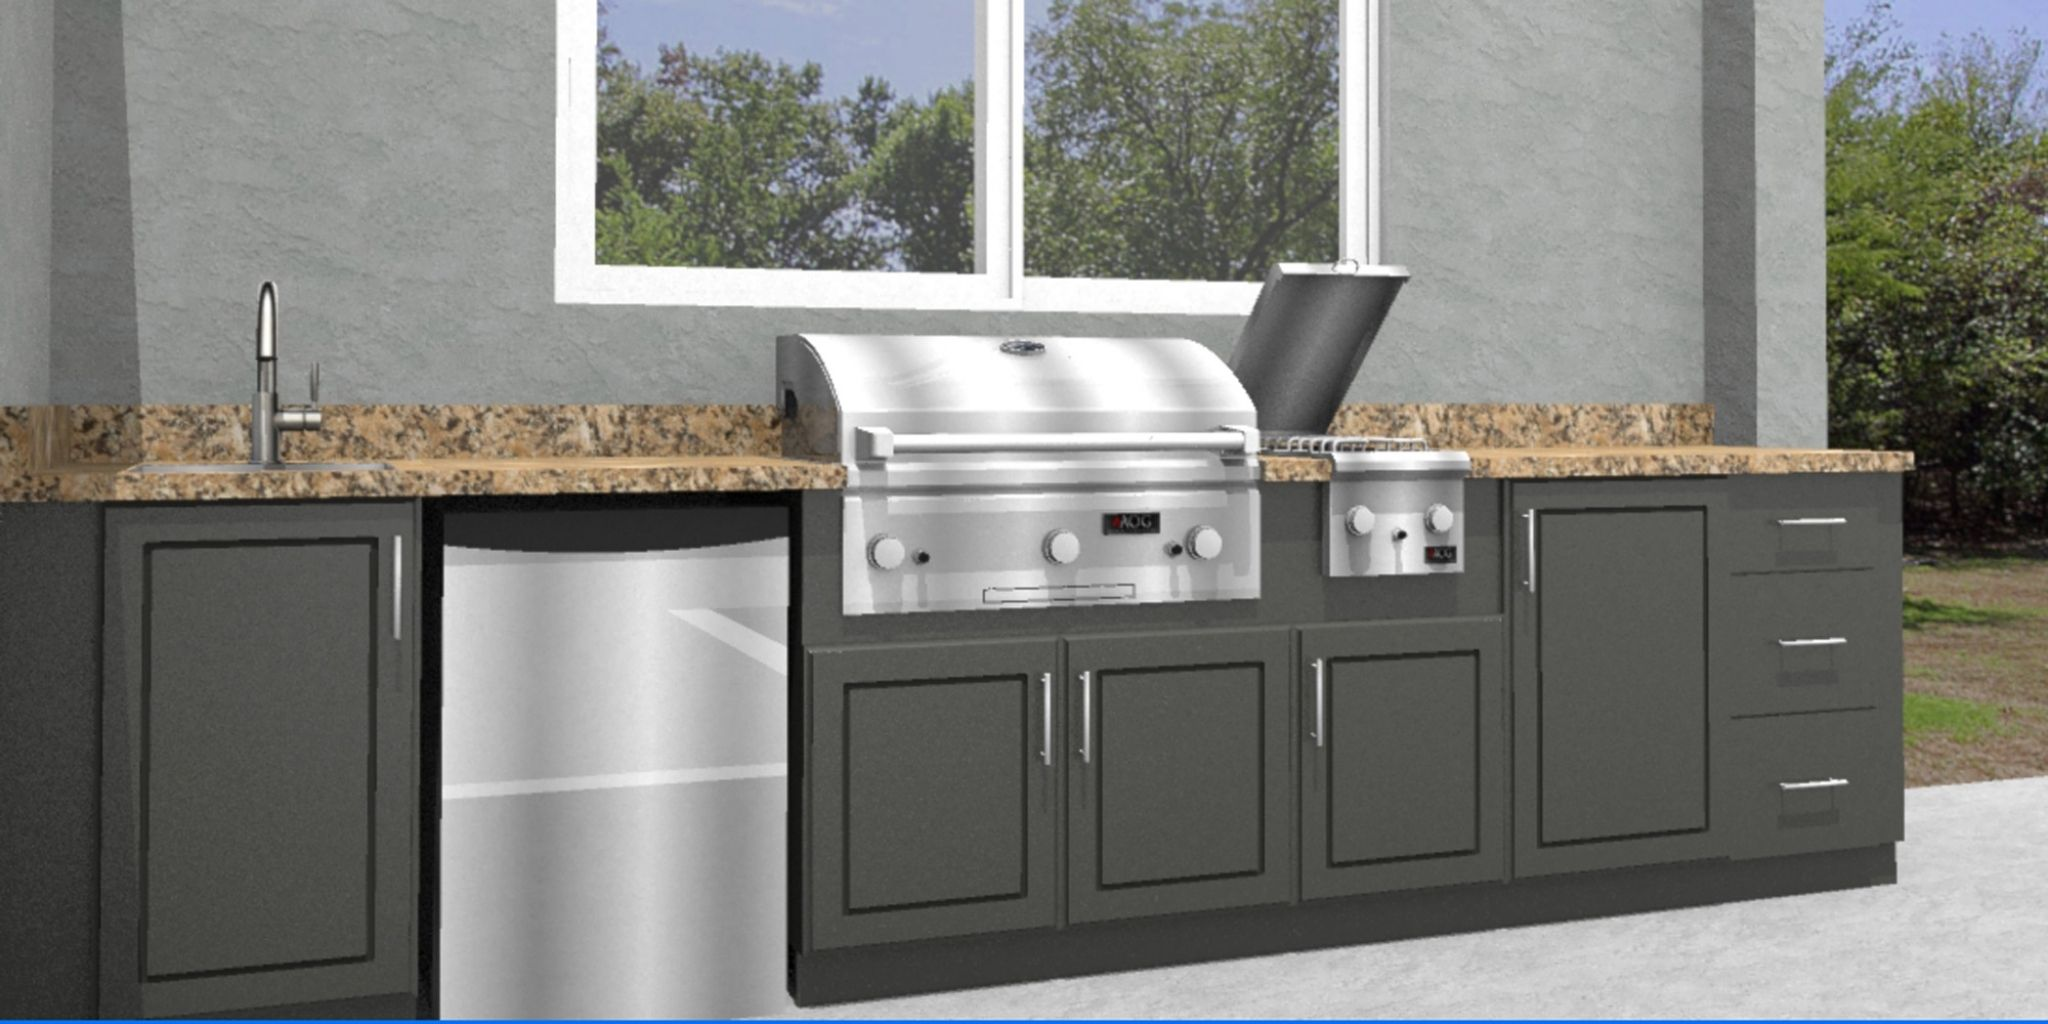 Polymer Cabinets For Outdoor Kitchens Favorite Interior Paint Colors Check Mor Outdoor Kitchen Cabinets Outdoor Kitchen Appliances Kitchen Cabinets With Sink